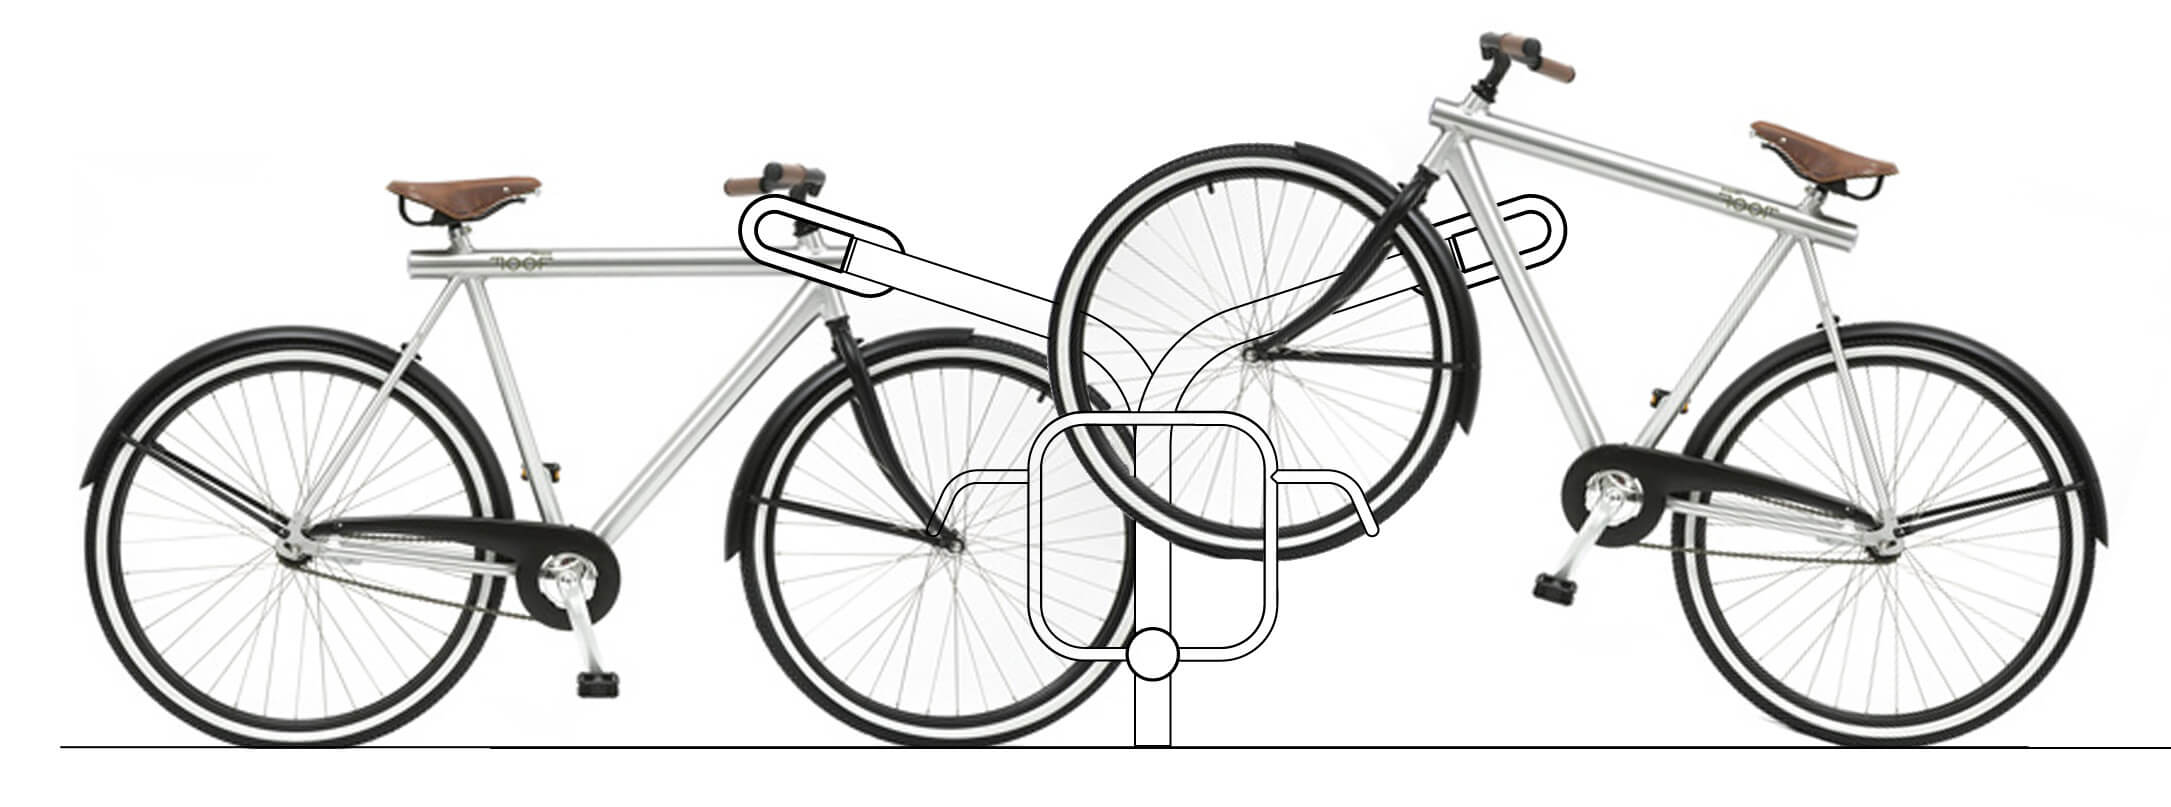 R-Net bicycle element drawing